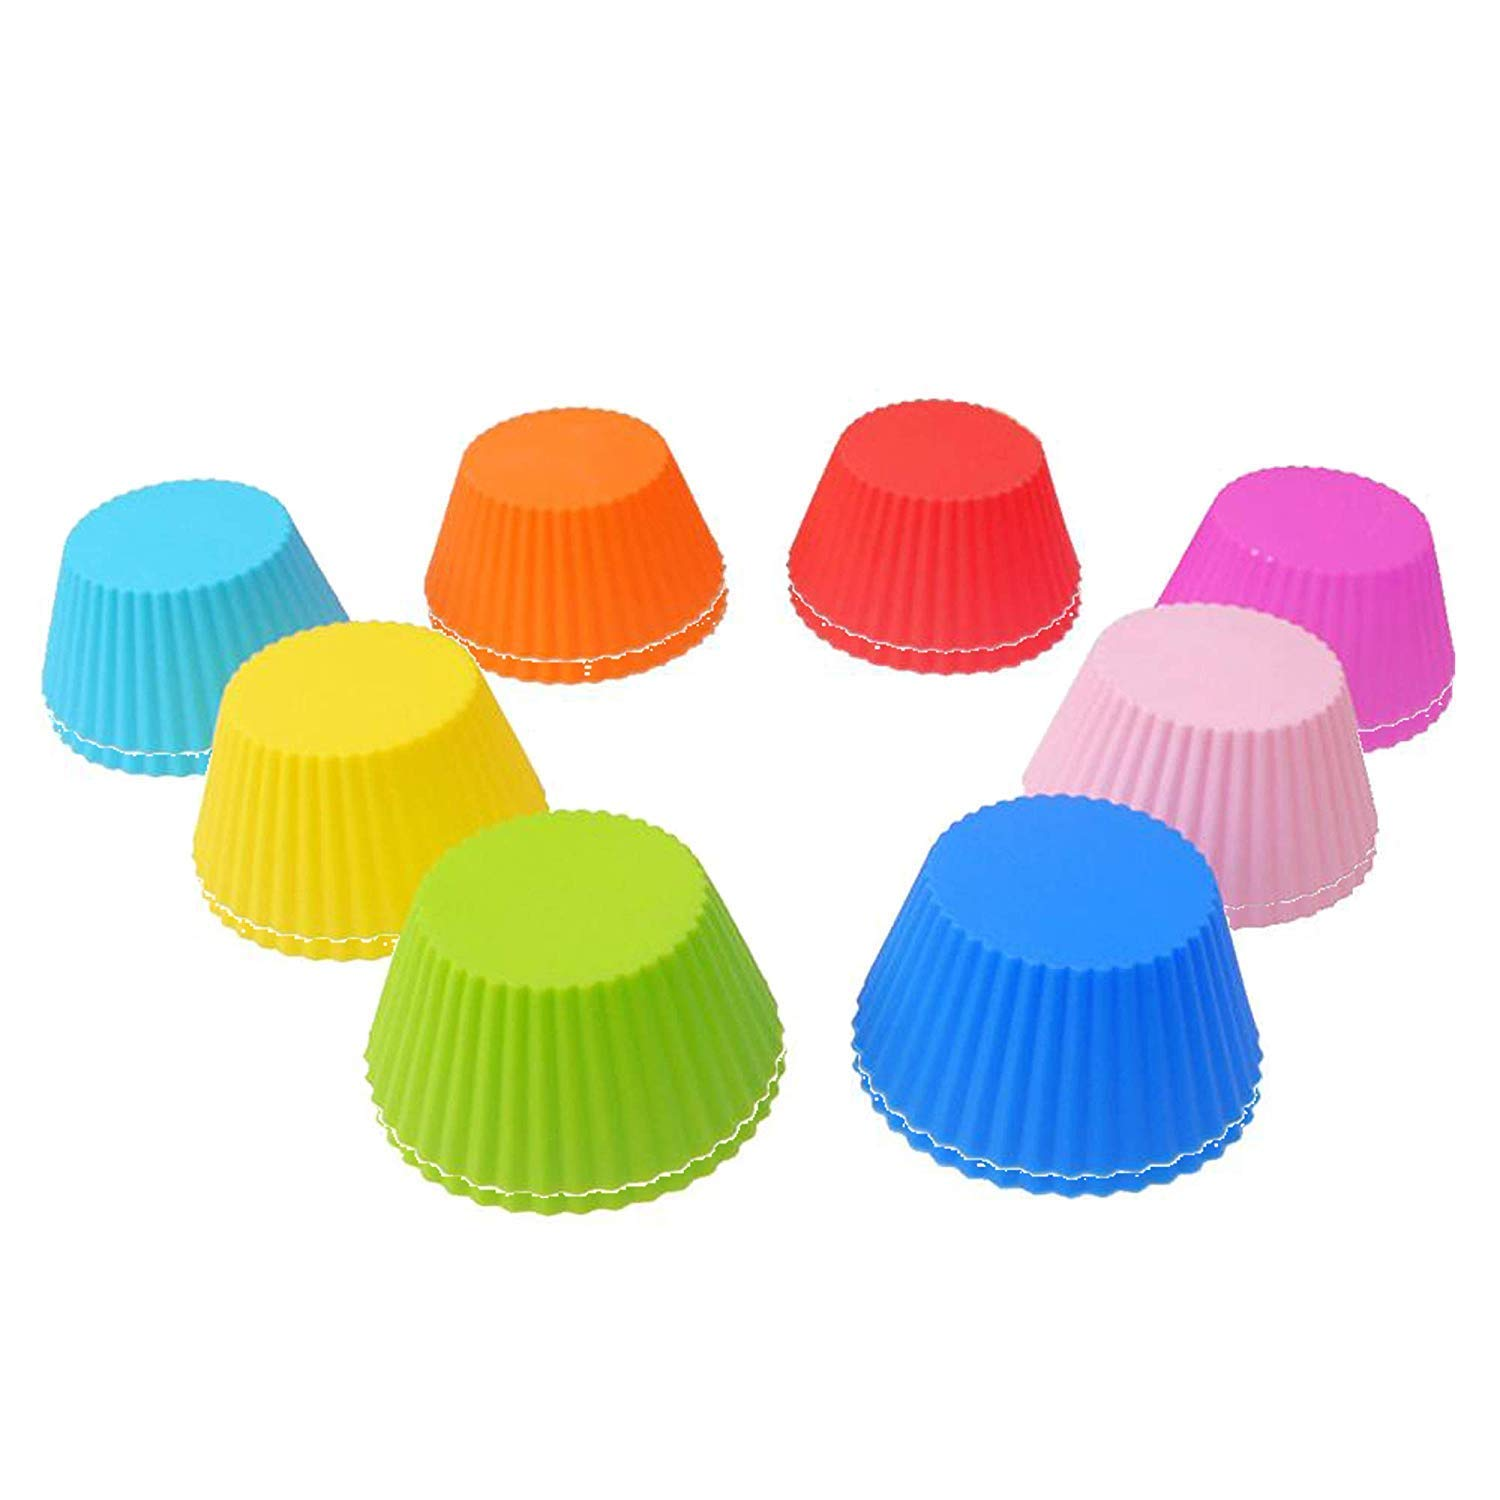 16 PCS Silica gel Eco-Friendly Cake Cup Cupcake Cases Muffin Baking Cup Small Cake Mold Silicone DIY Baking Cups - Round (8 Colors)